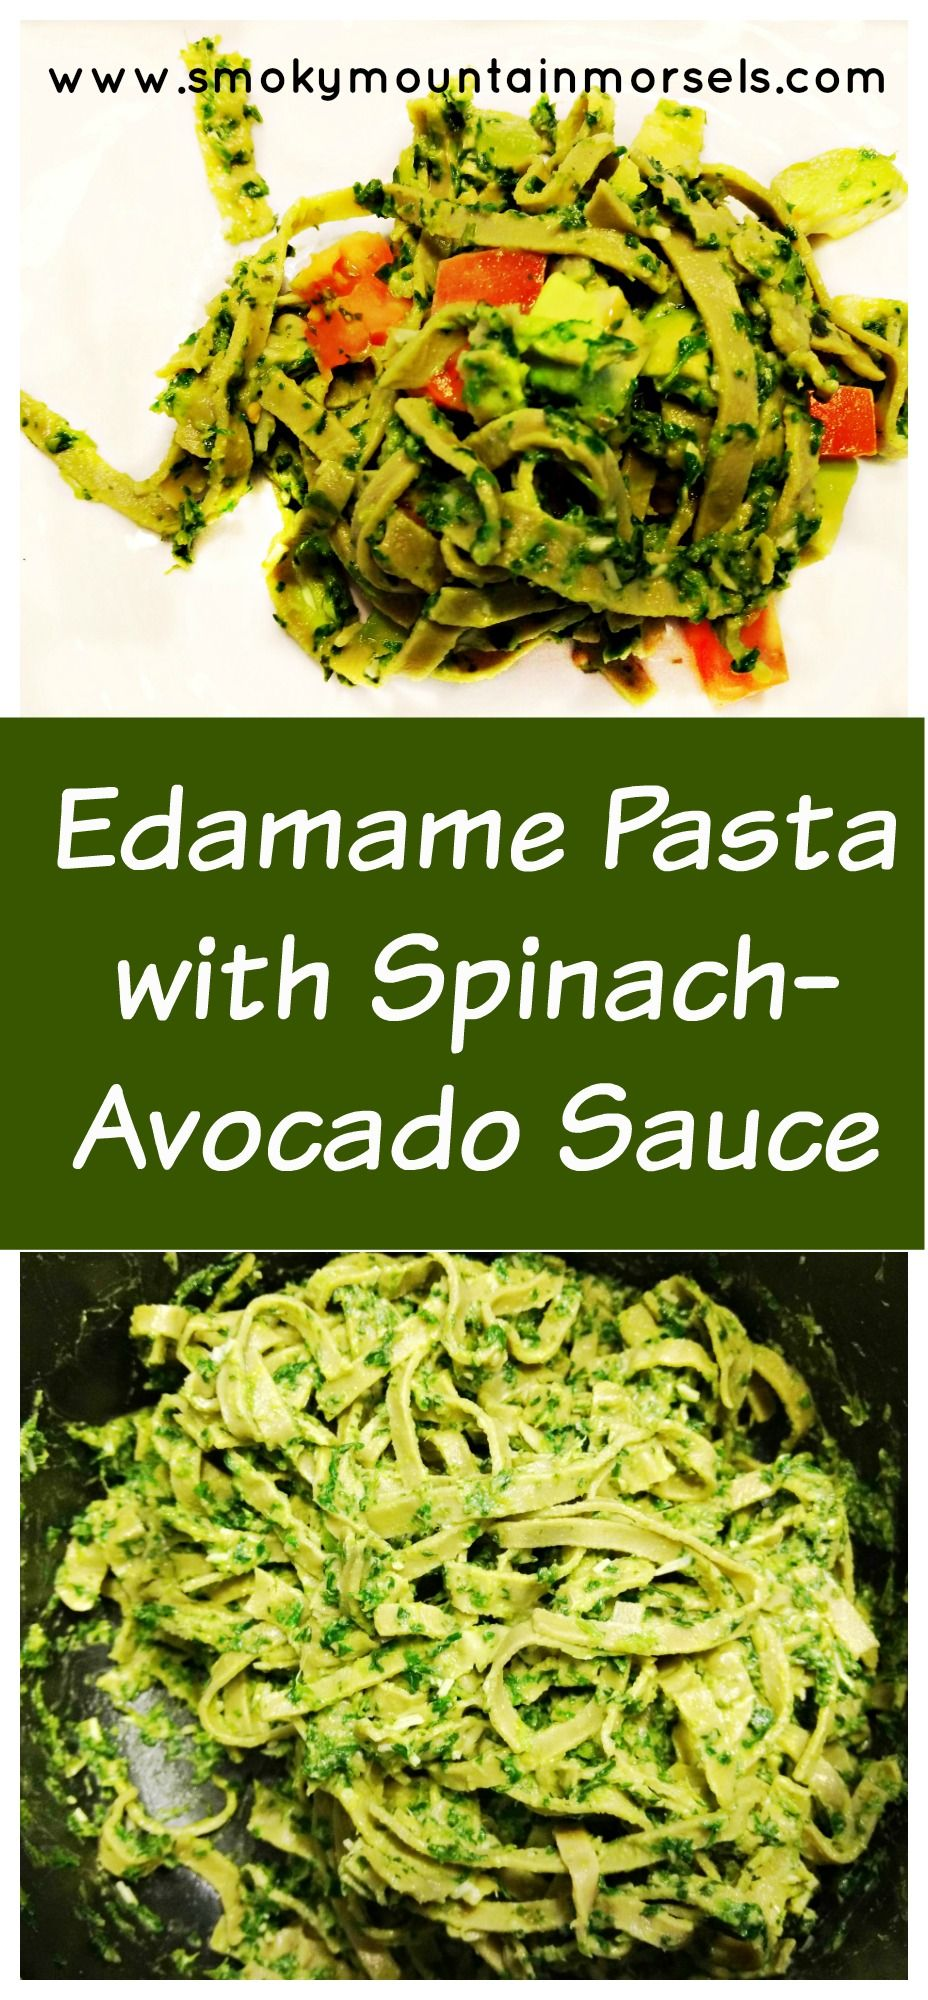 Edamame Pasta With Spinach Avocado Sauce With Images Edamame